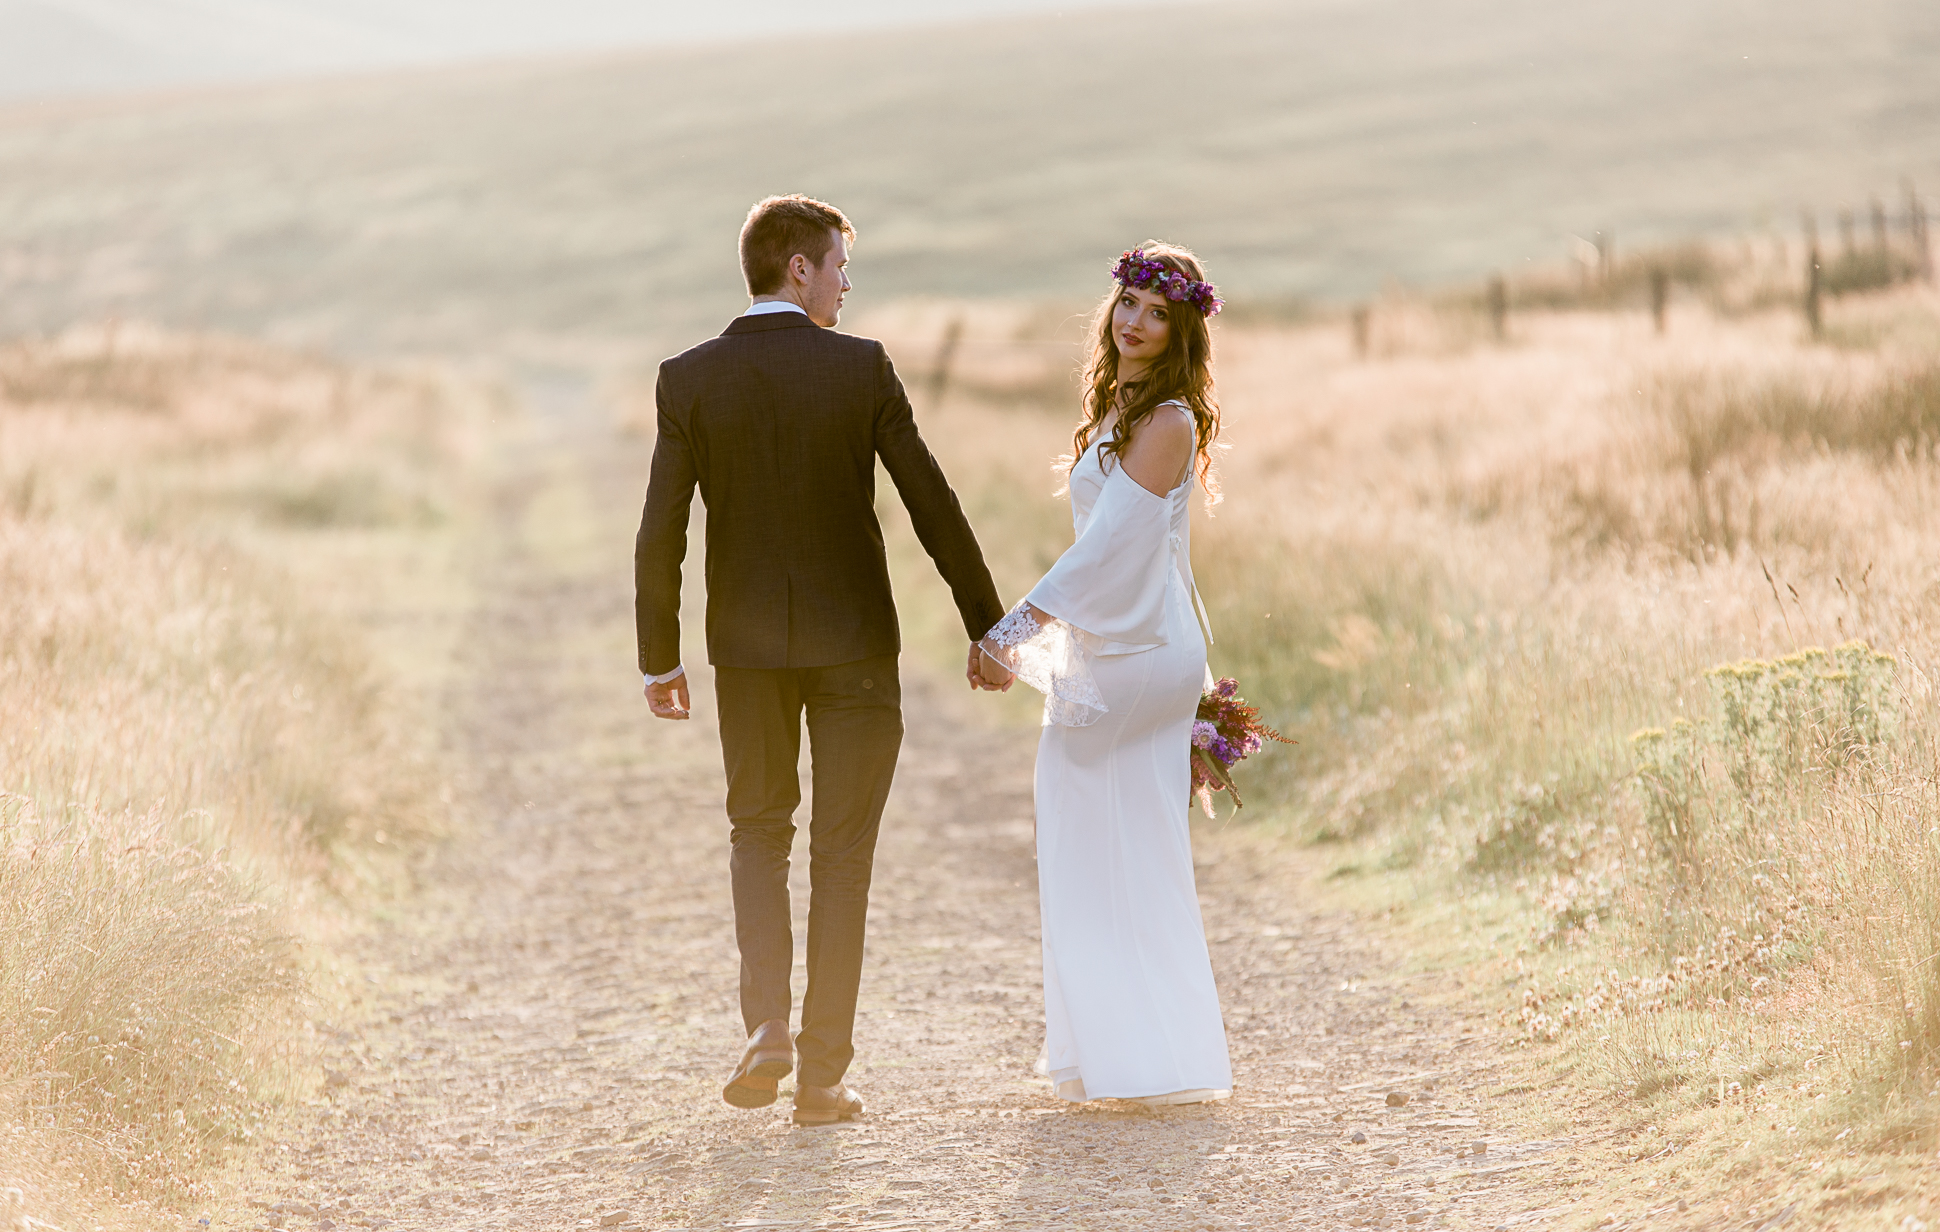 Wedding Photography Saddleworth Moor, Huddersfield